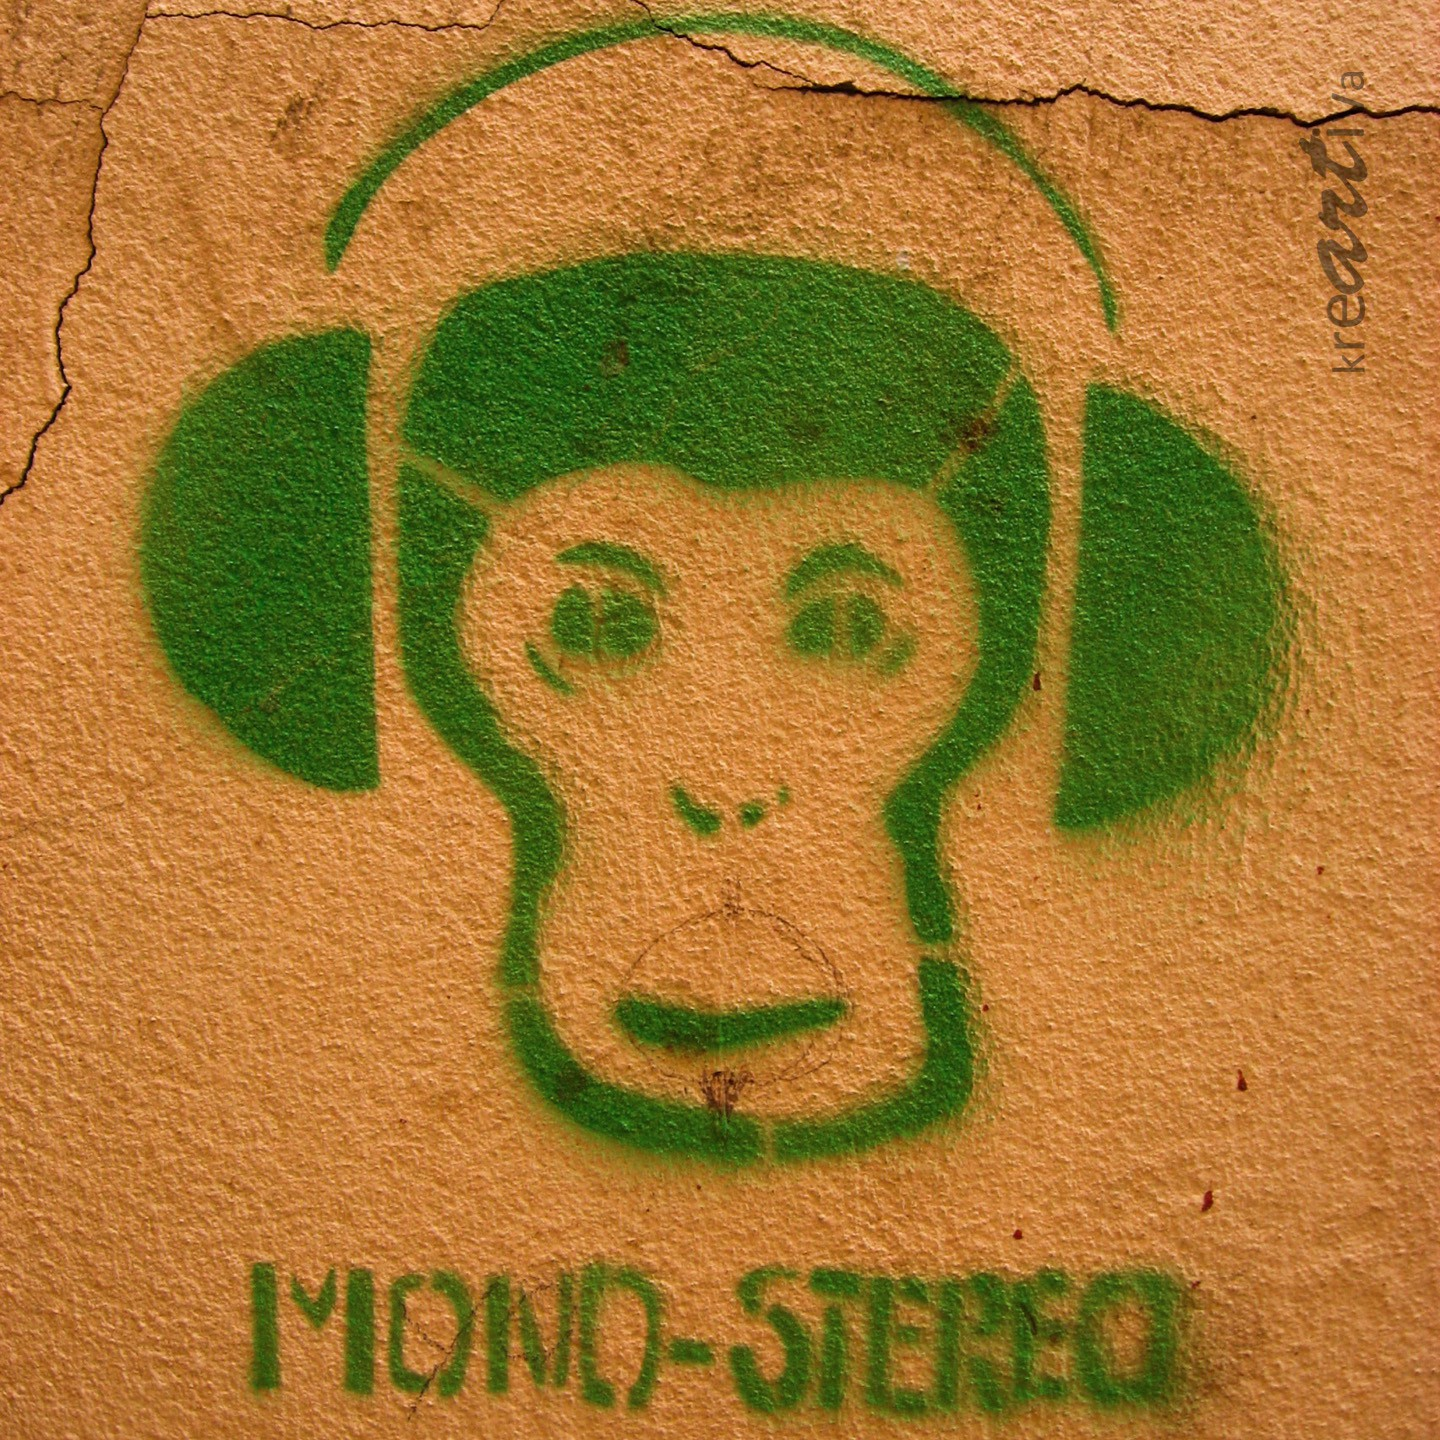 Mono-Stereo, ape with headphones.